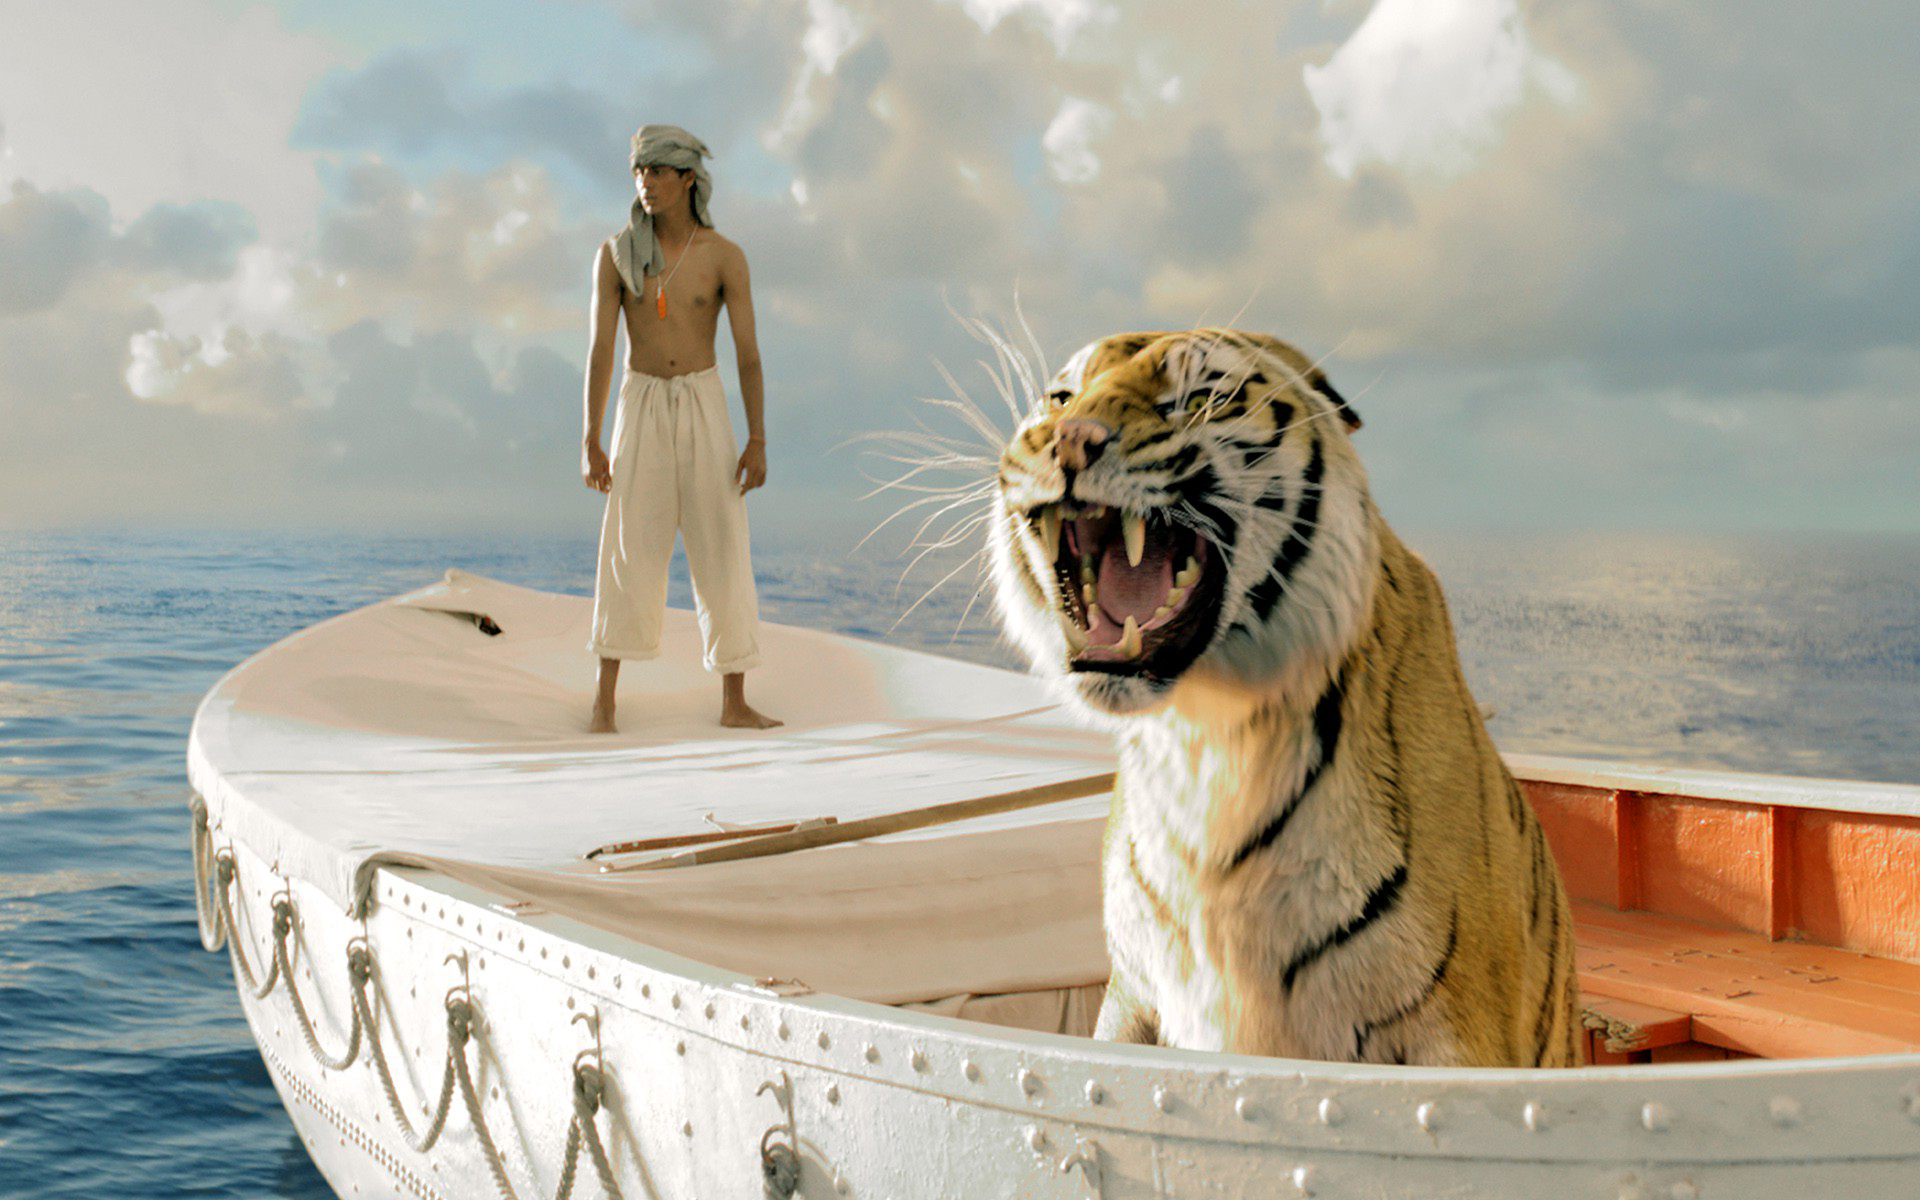 Life of pi wallpaper 1920x1200 69886 for Life of pi characterization